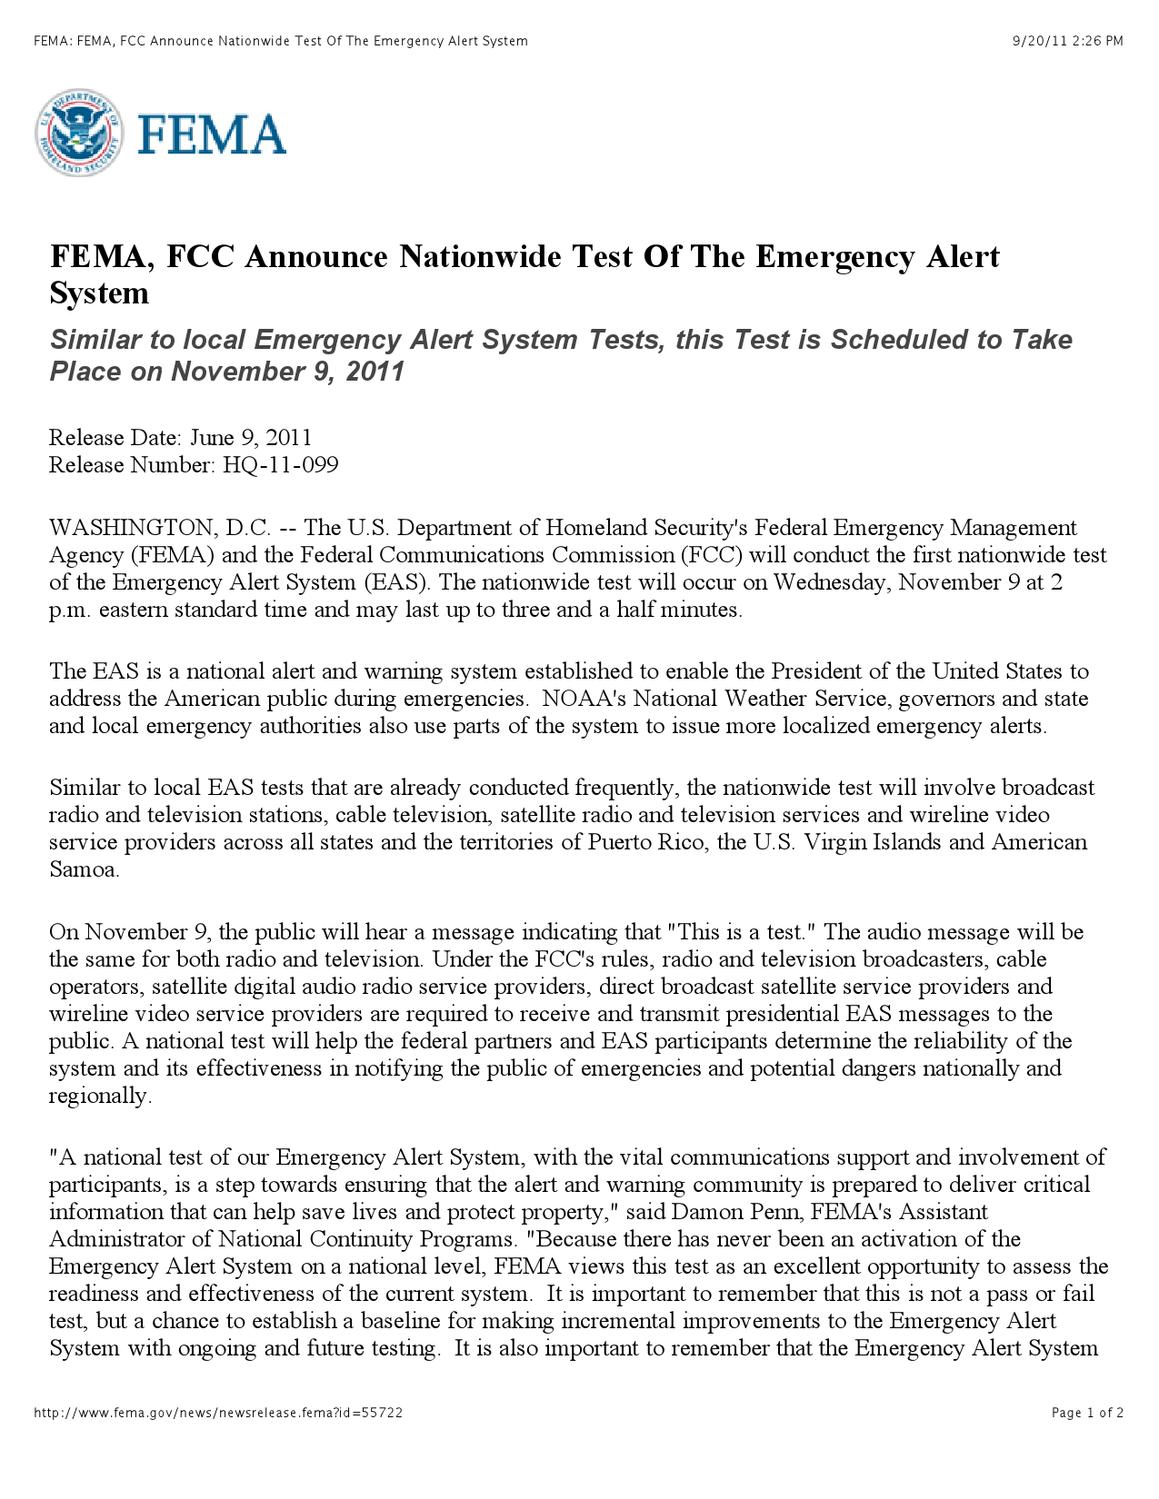 FEMA Test EAS System on 11-9-2011 by The United Congregation of